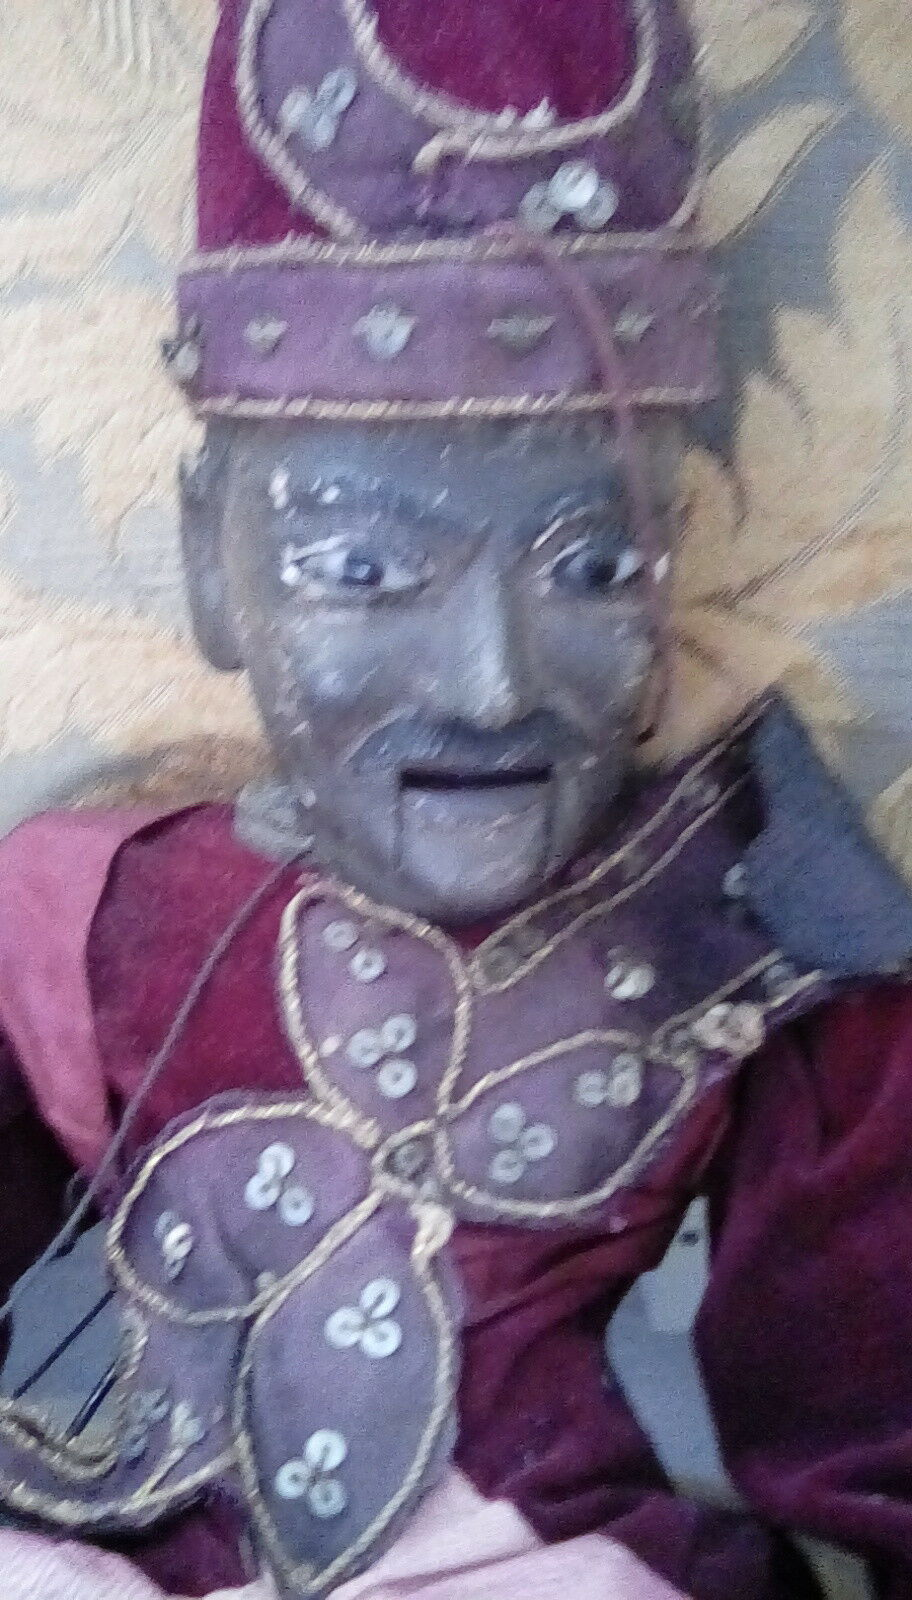 Antique wooden Indonesian man puppet with glass eyes open mouth